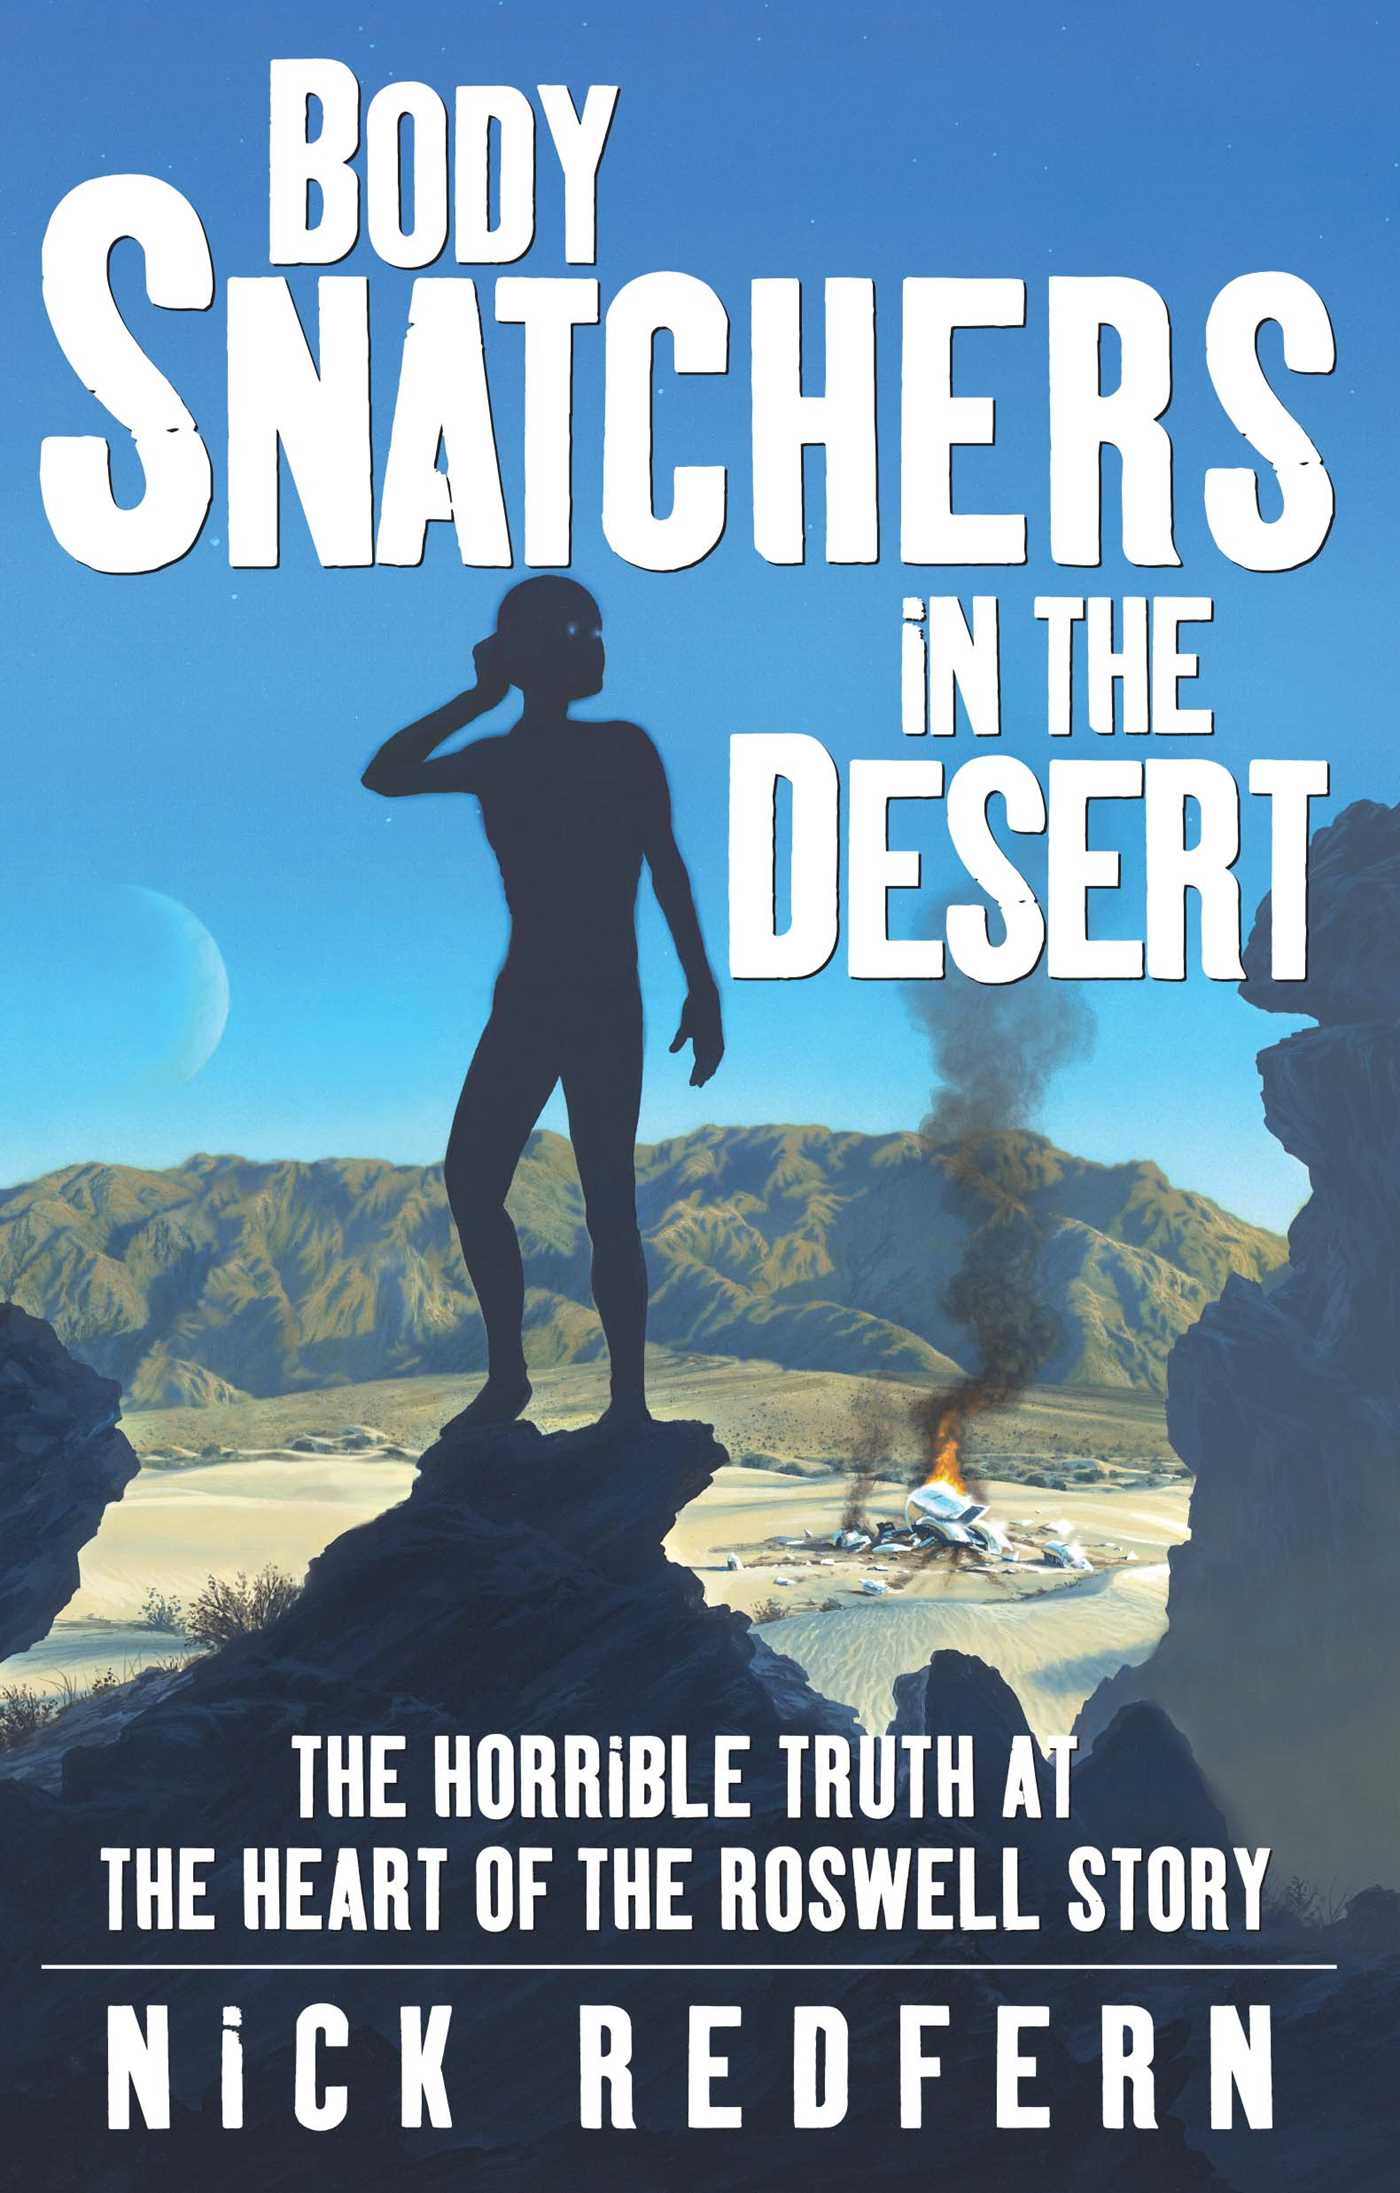 Body snatchers in the desert 9780743497534 hr